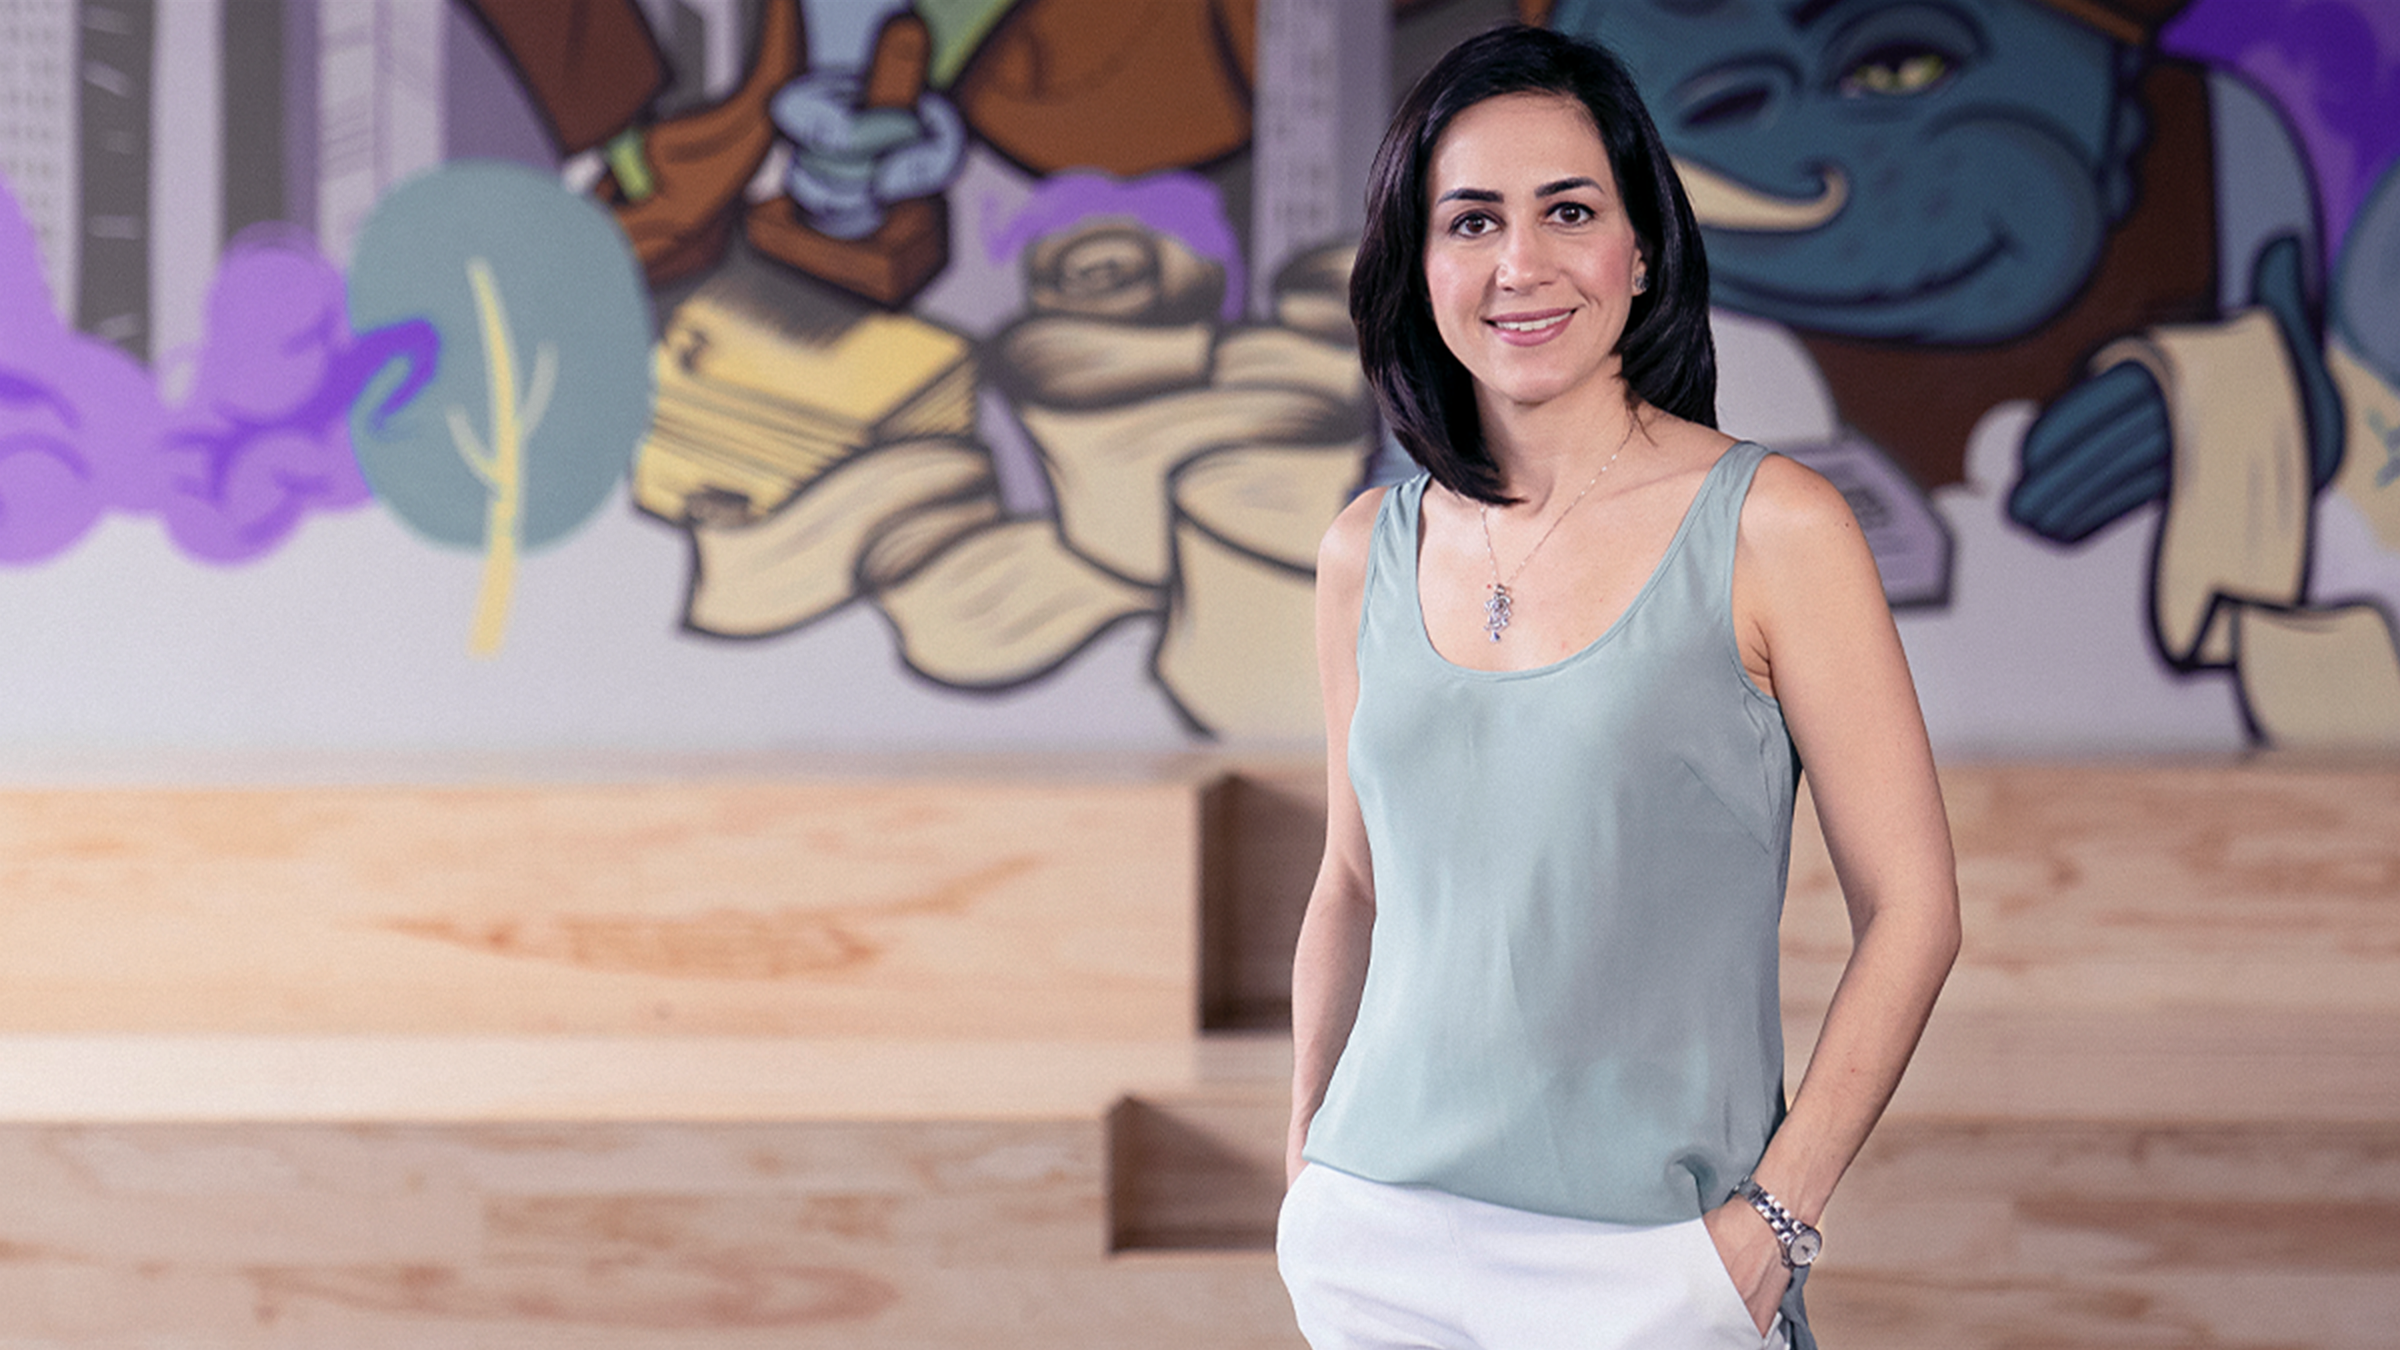 Cristina Junqueira, co-founder of Nubank, poses in the headquarters of the company in São Paulo, Brazil.